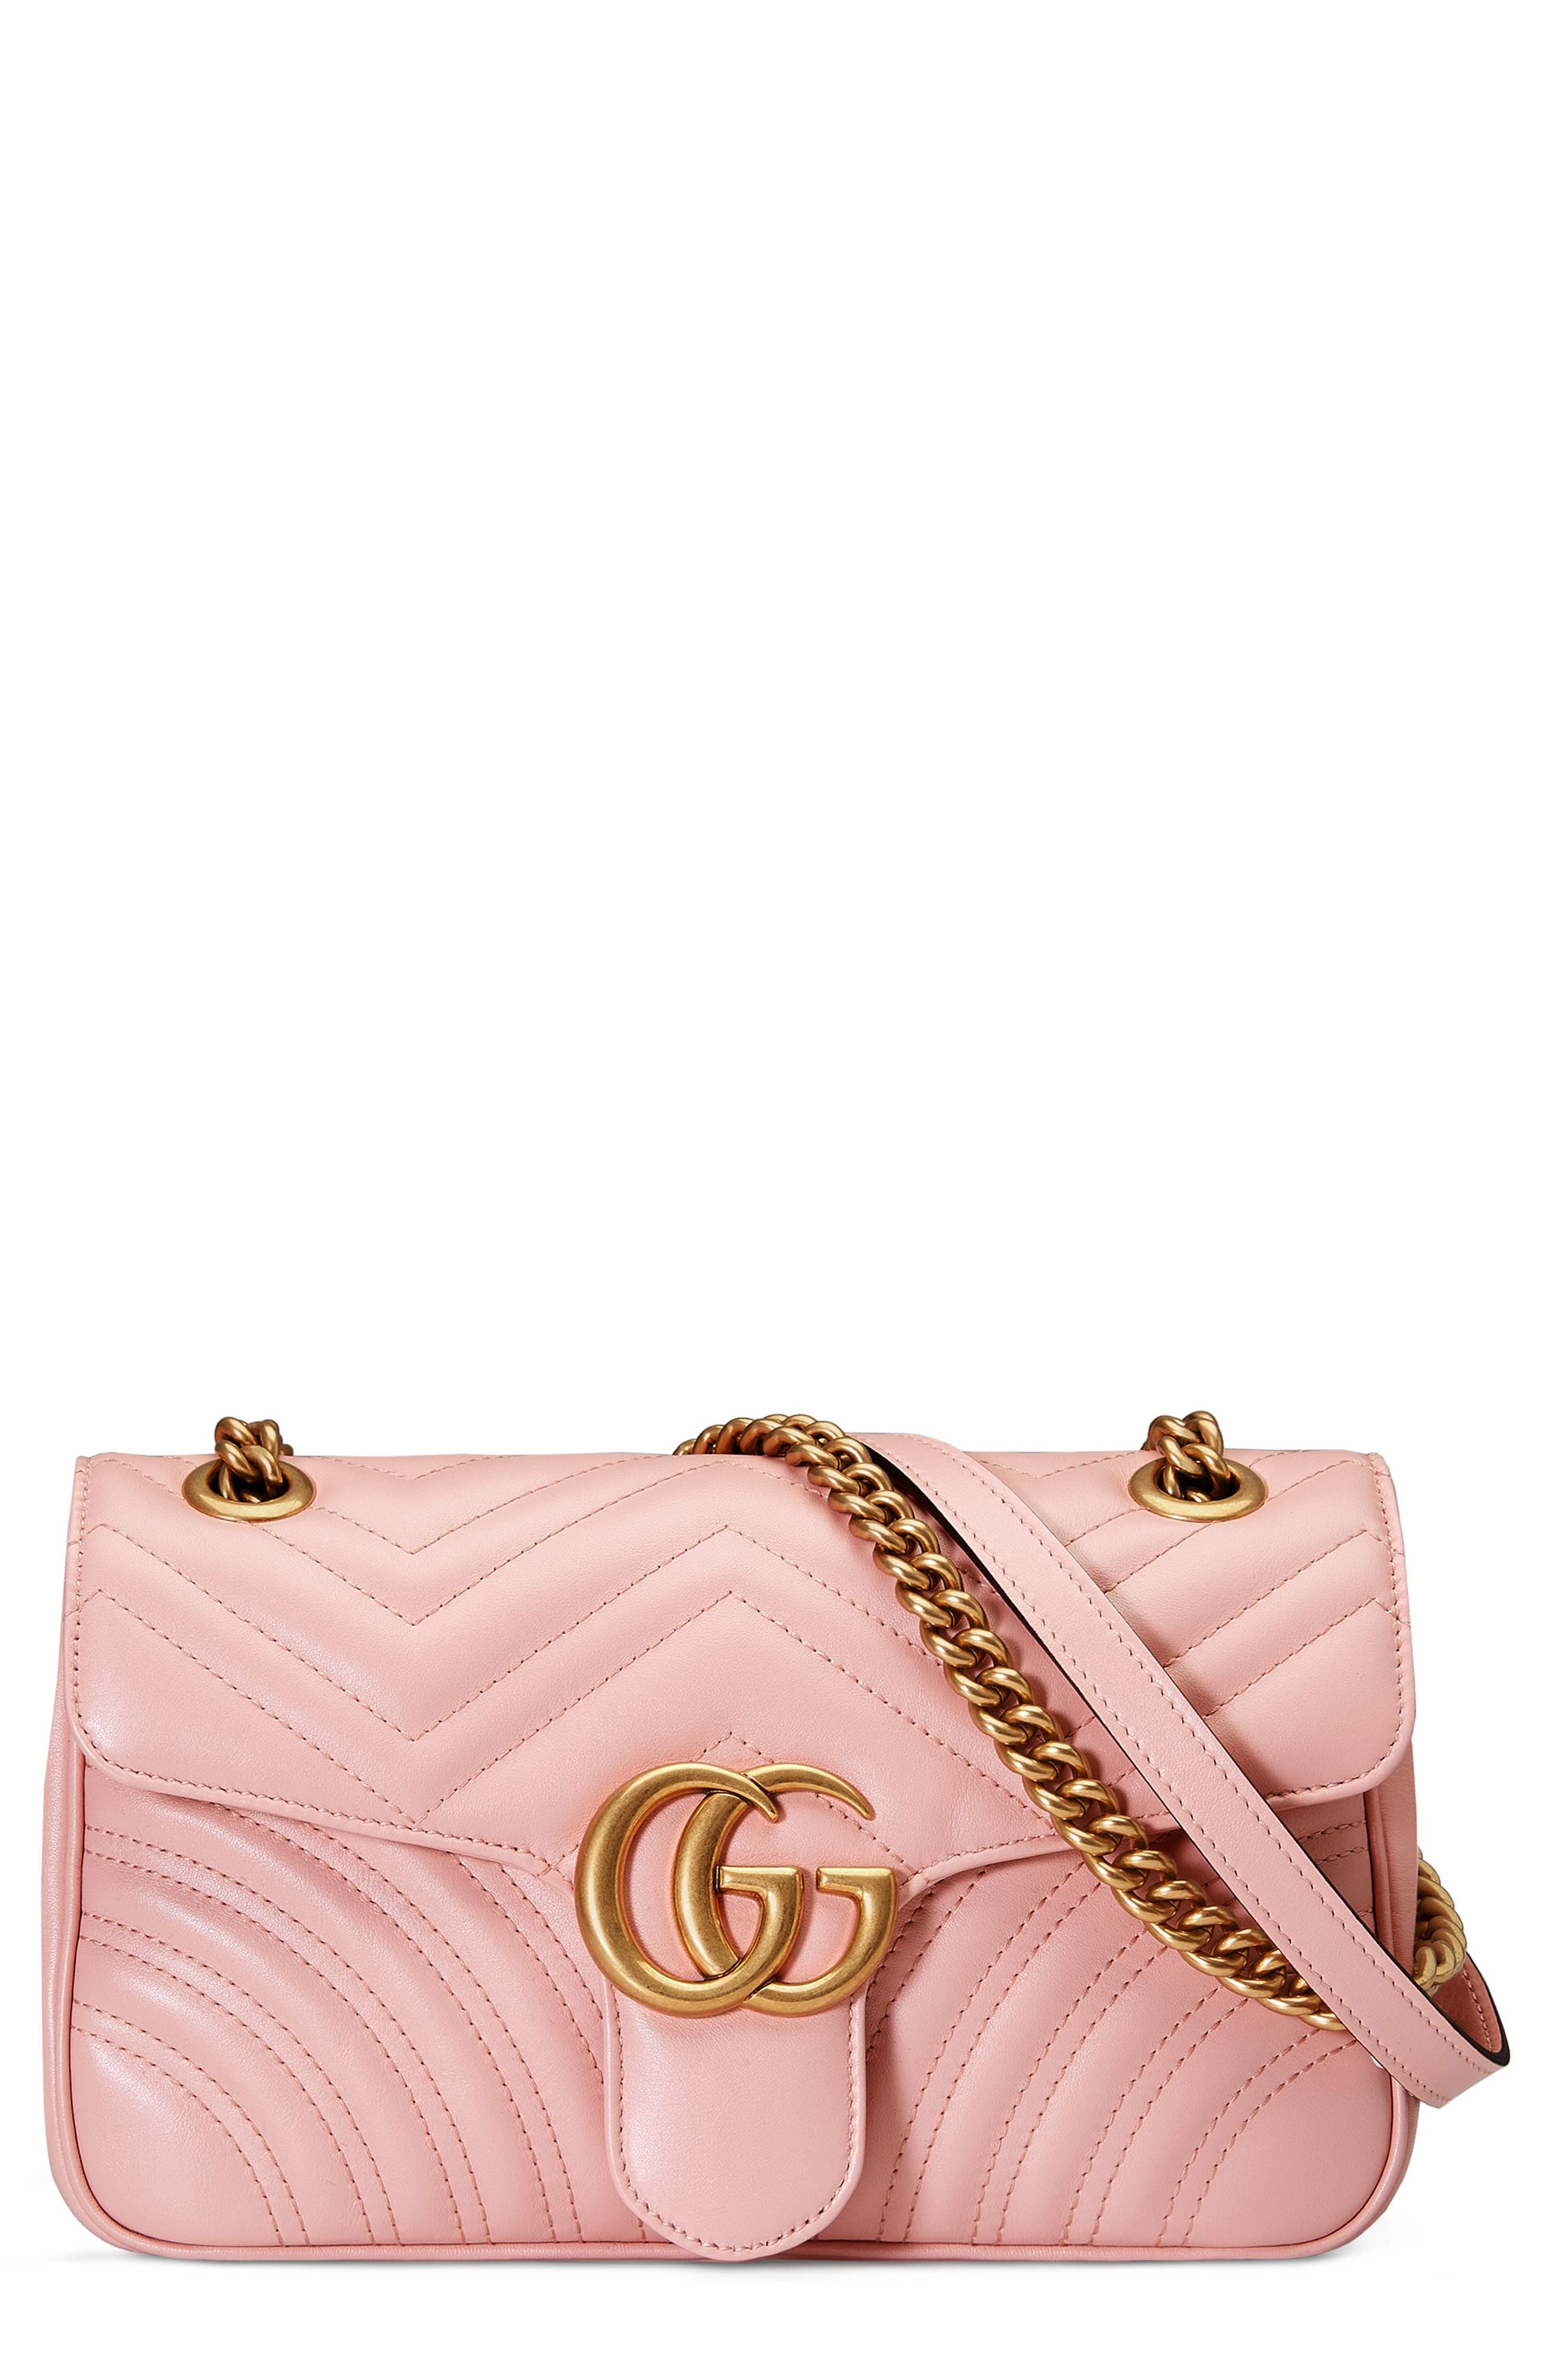 Small GG Marmont 2.0 Matelassé Leather Shoulder Bag,                         Main,                         color, PERFECT PINK/ PERFECT PINK